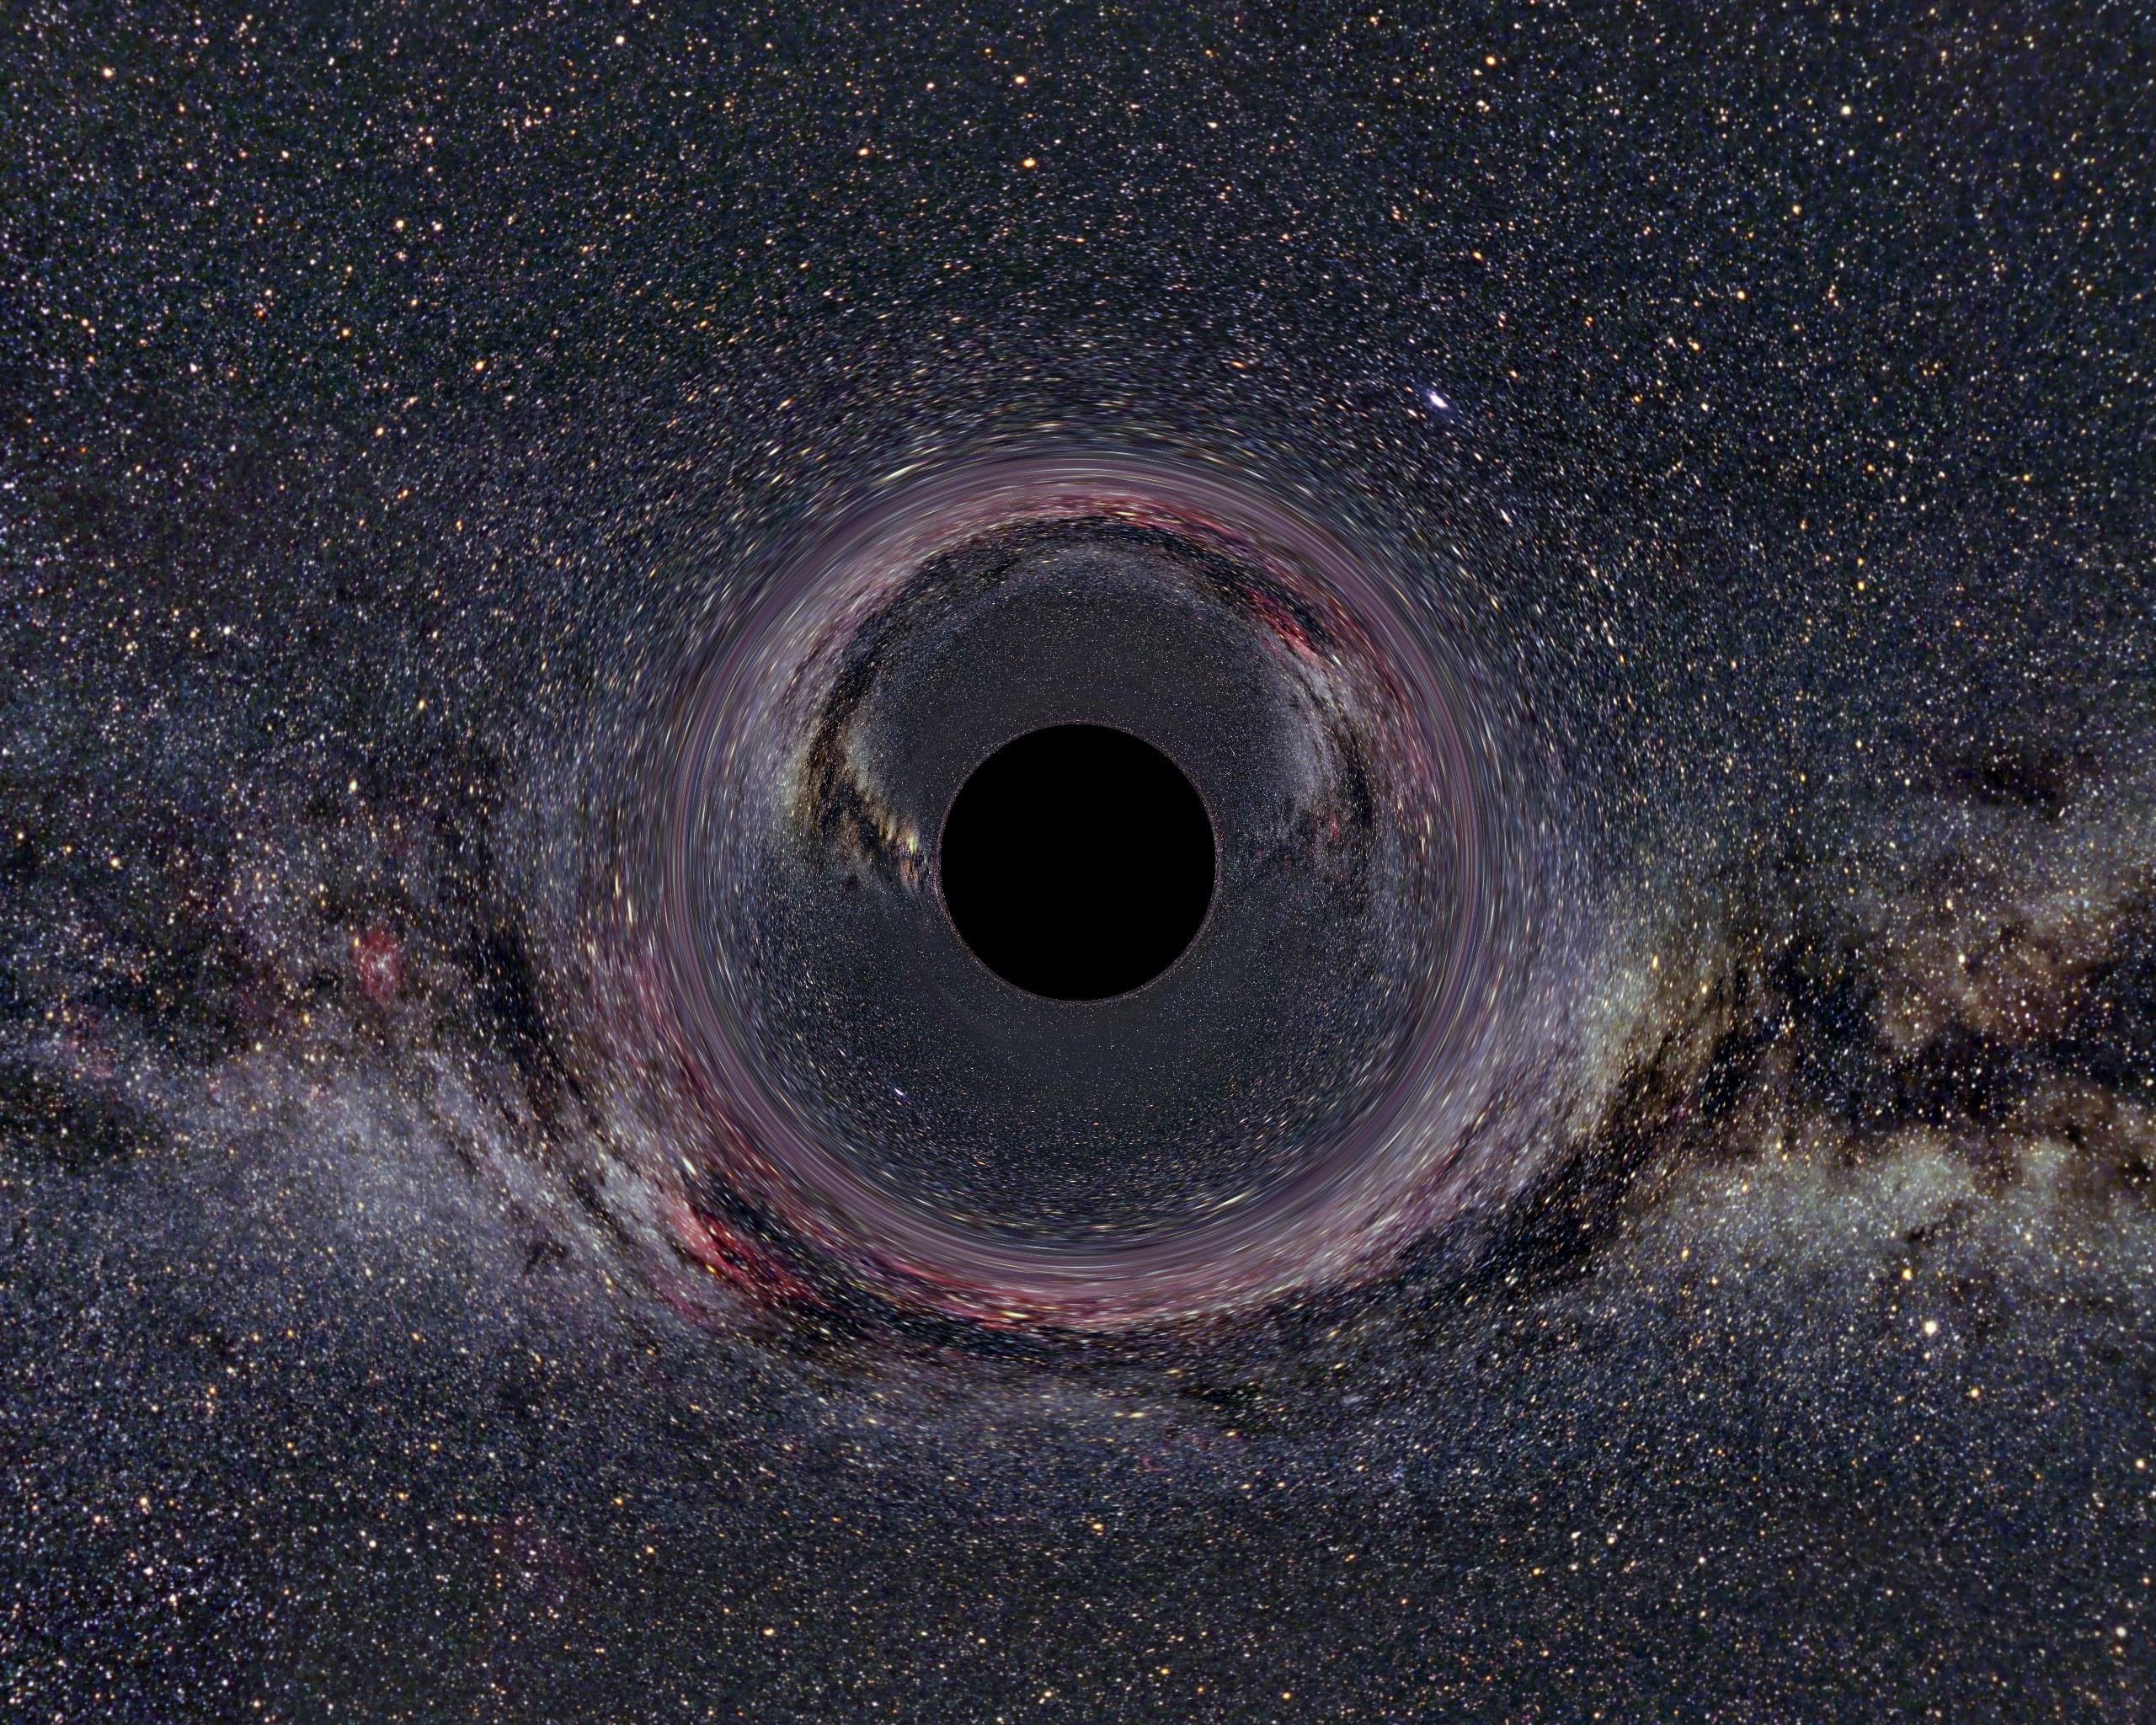 A simulated view of a 10-solar-mass black hole 600 miles (900 km) away from the observer -- and against the plane of the Milky Way Galaxy.